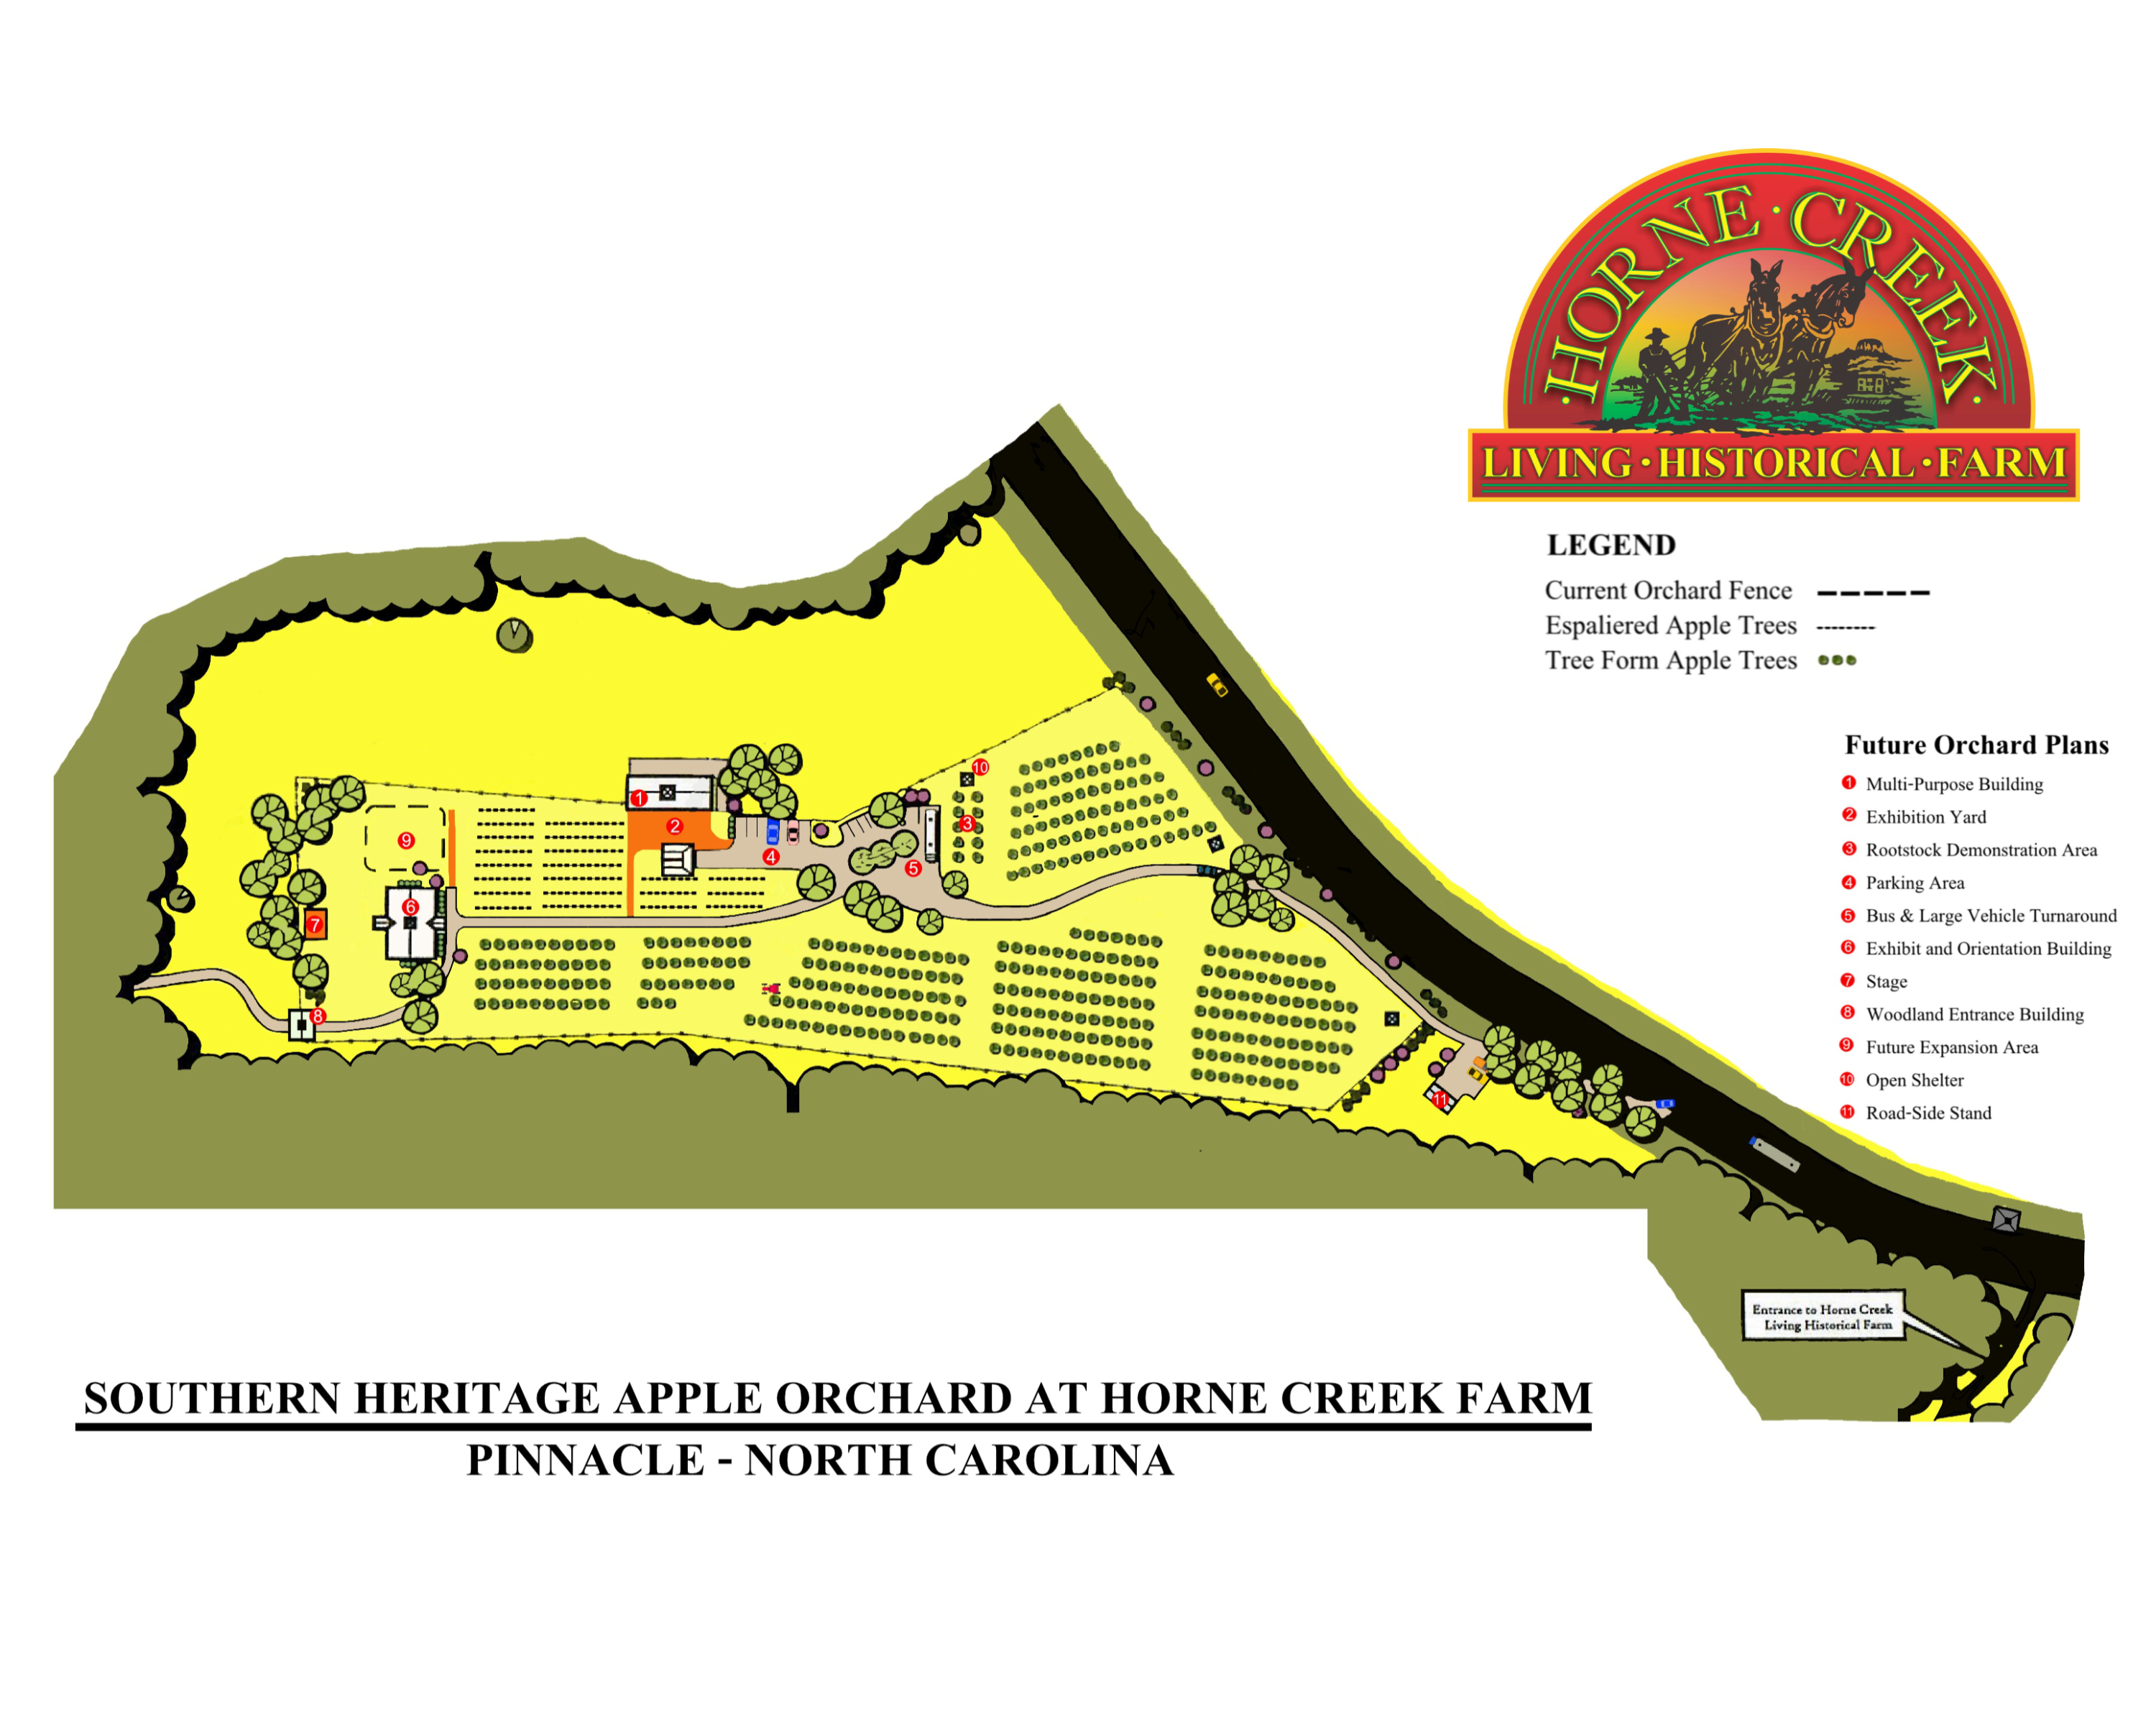 map of the Southern Heritage Apple Orchard at Horne Creek Farm